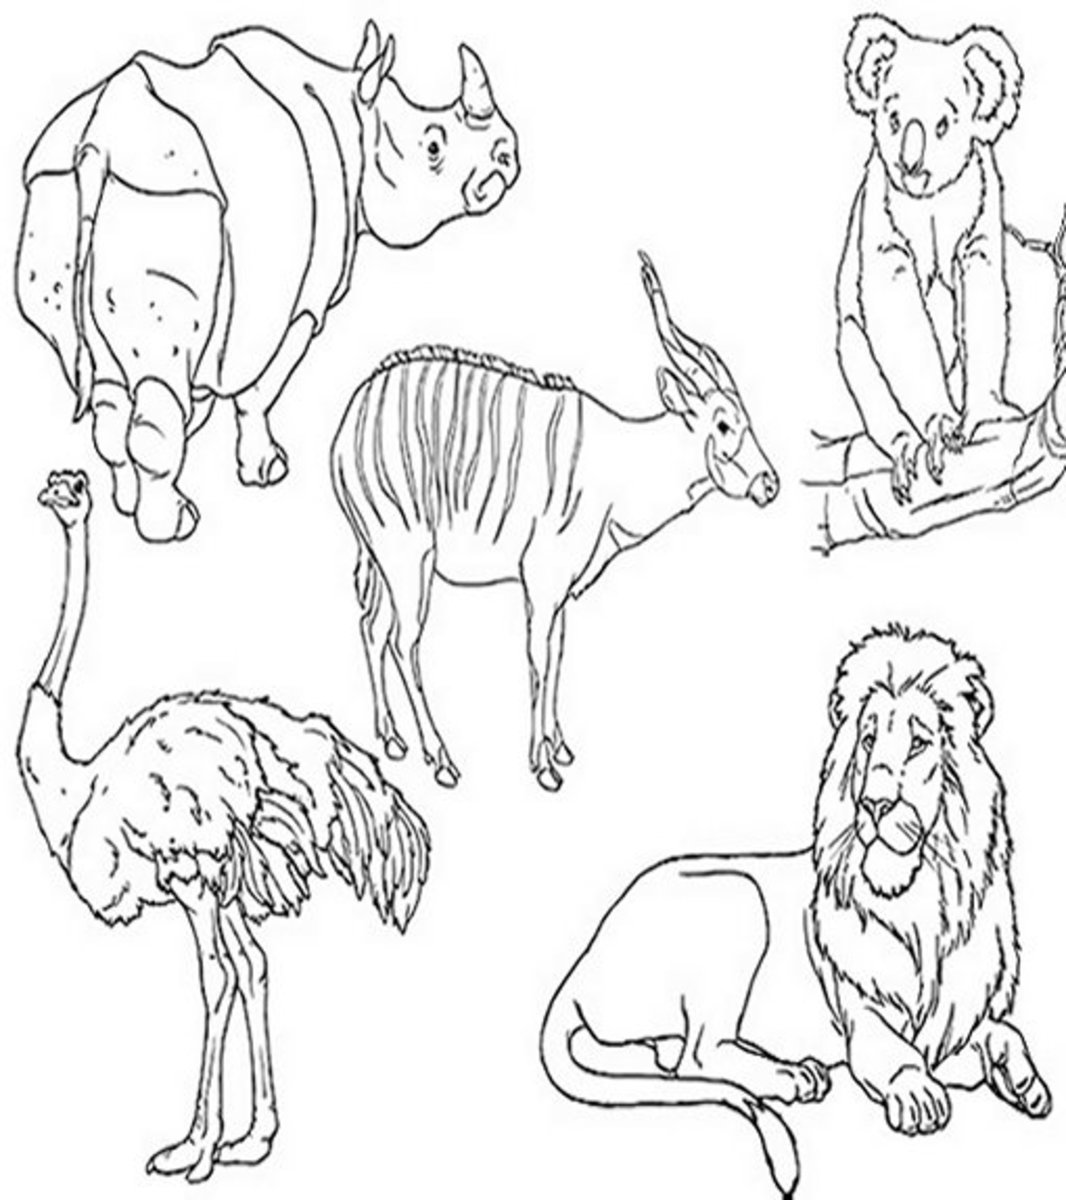 Zoo-Animals Coloring Pictures Colouring Pages Montage Rhino Ostrich Lion